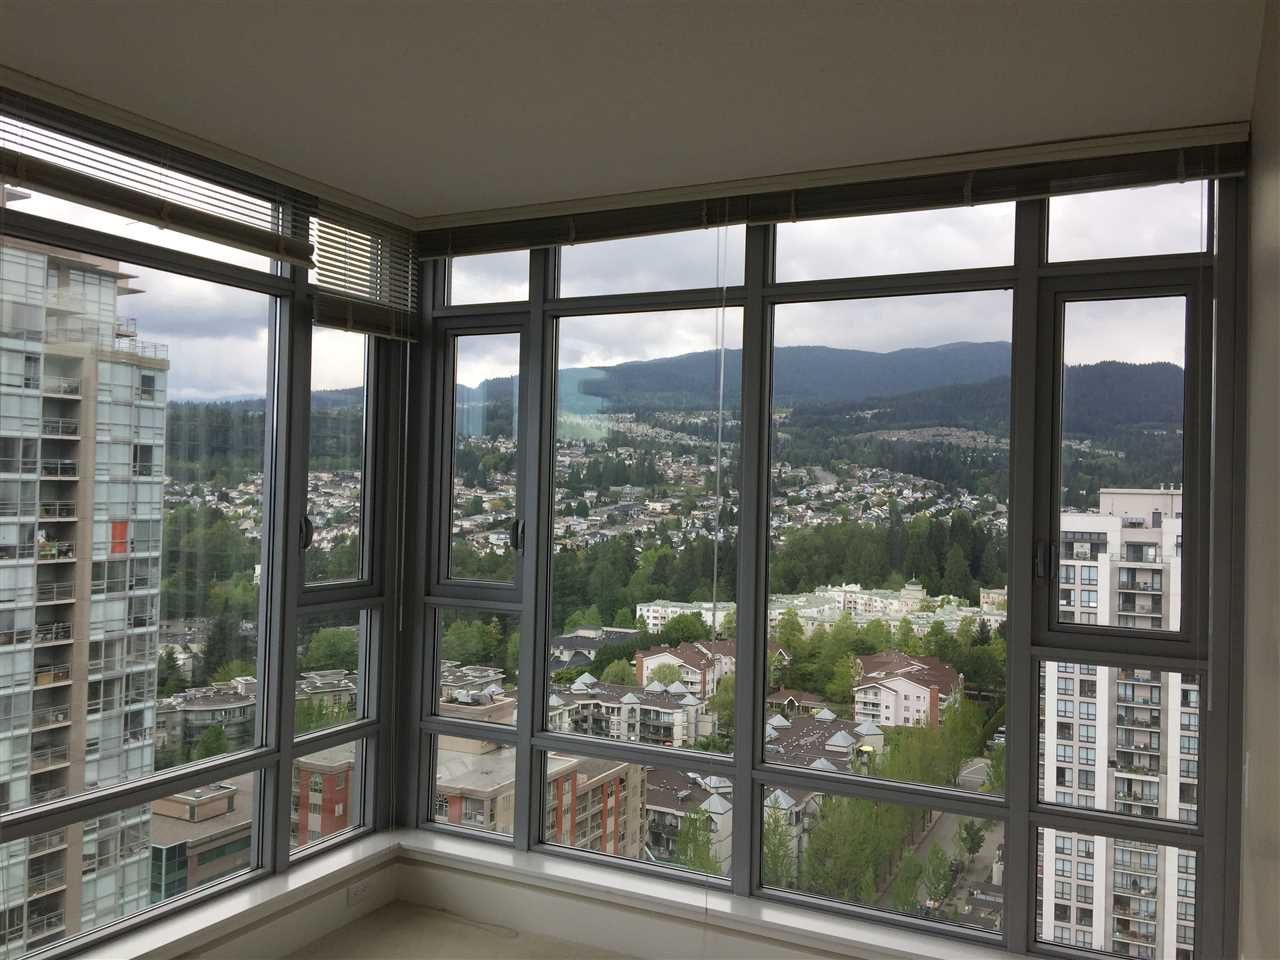 """Main Photo: 2603 1155 THE HIGH Street in Coquitlam: North Coquitlam Condo for sale in """"M1 BY CRESSEY"""" : MLS®# R2061966"""